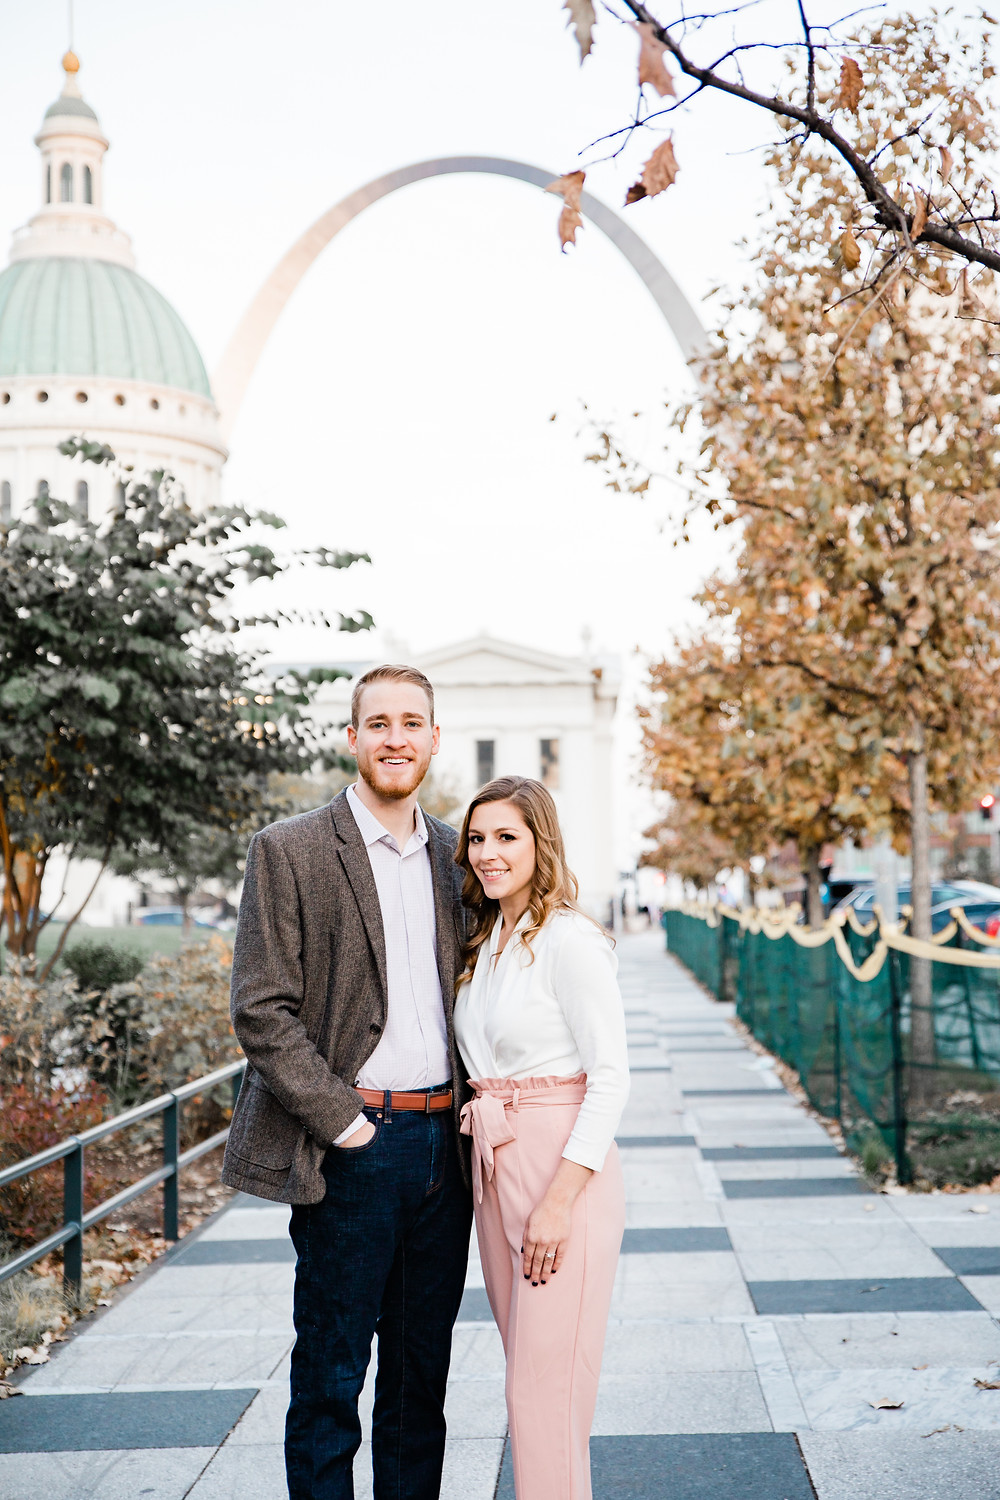 Downtown St. Louis Kiener Plaza Engagement Session | Engagement Photographer St. Louis